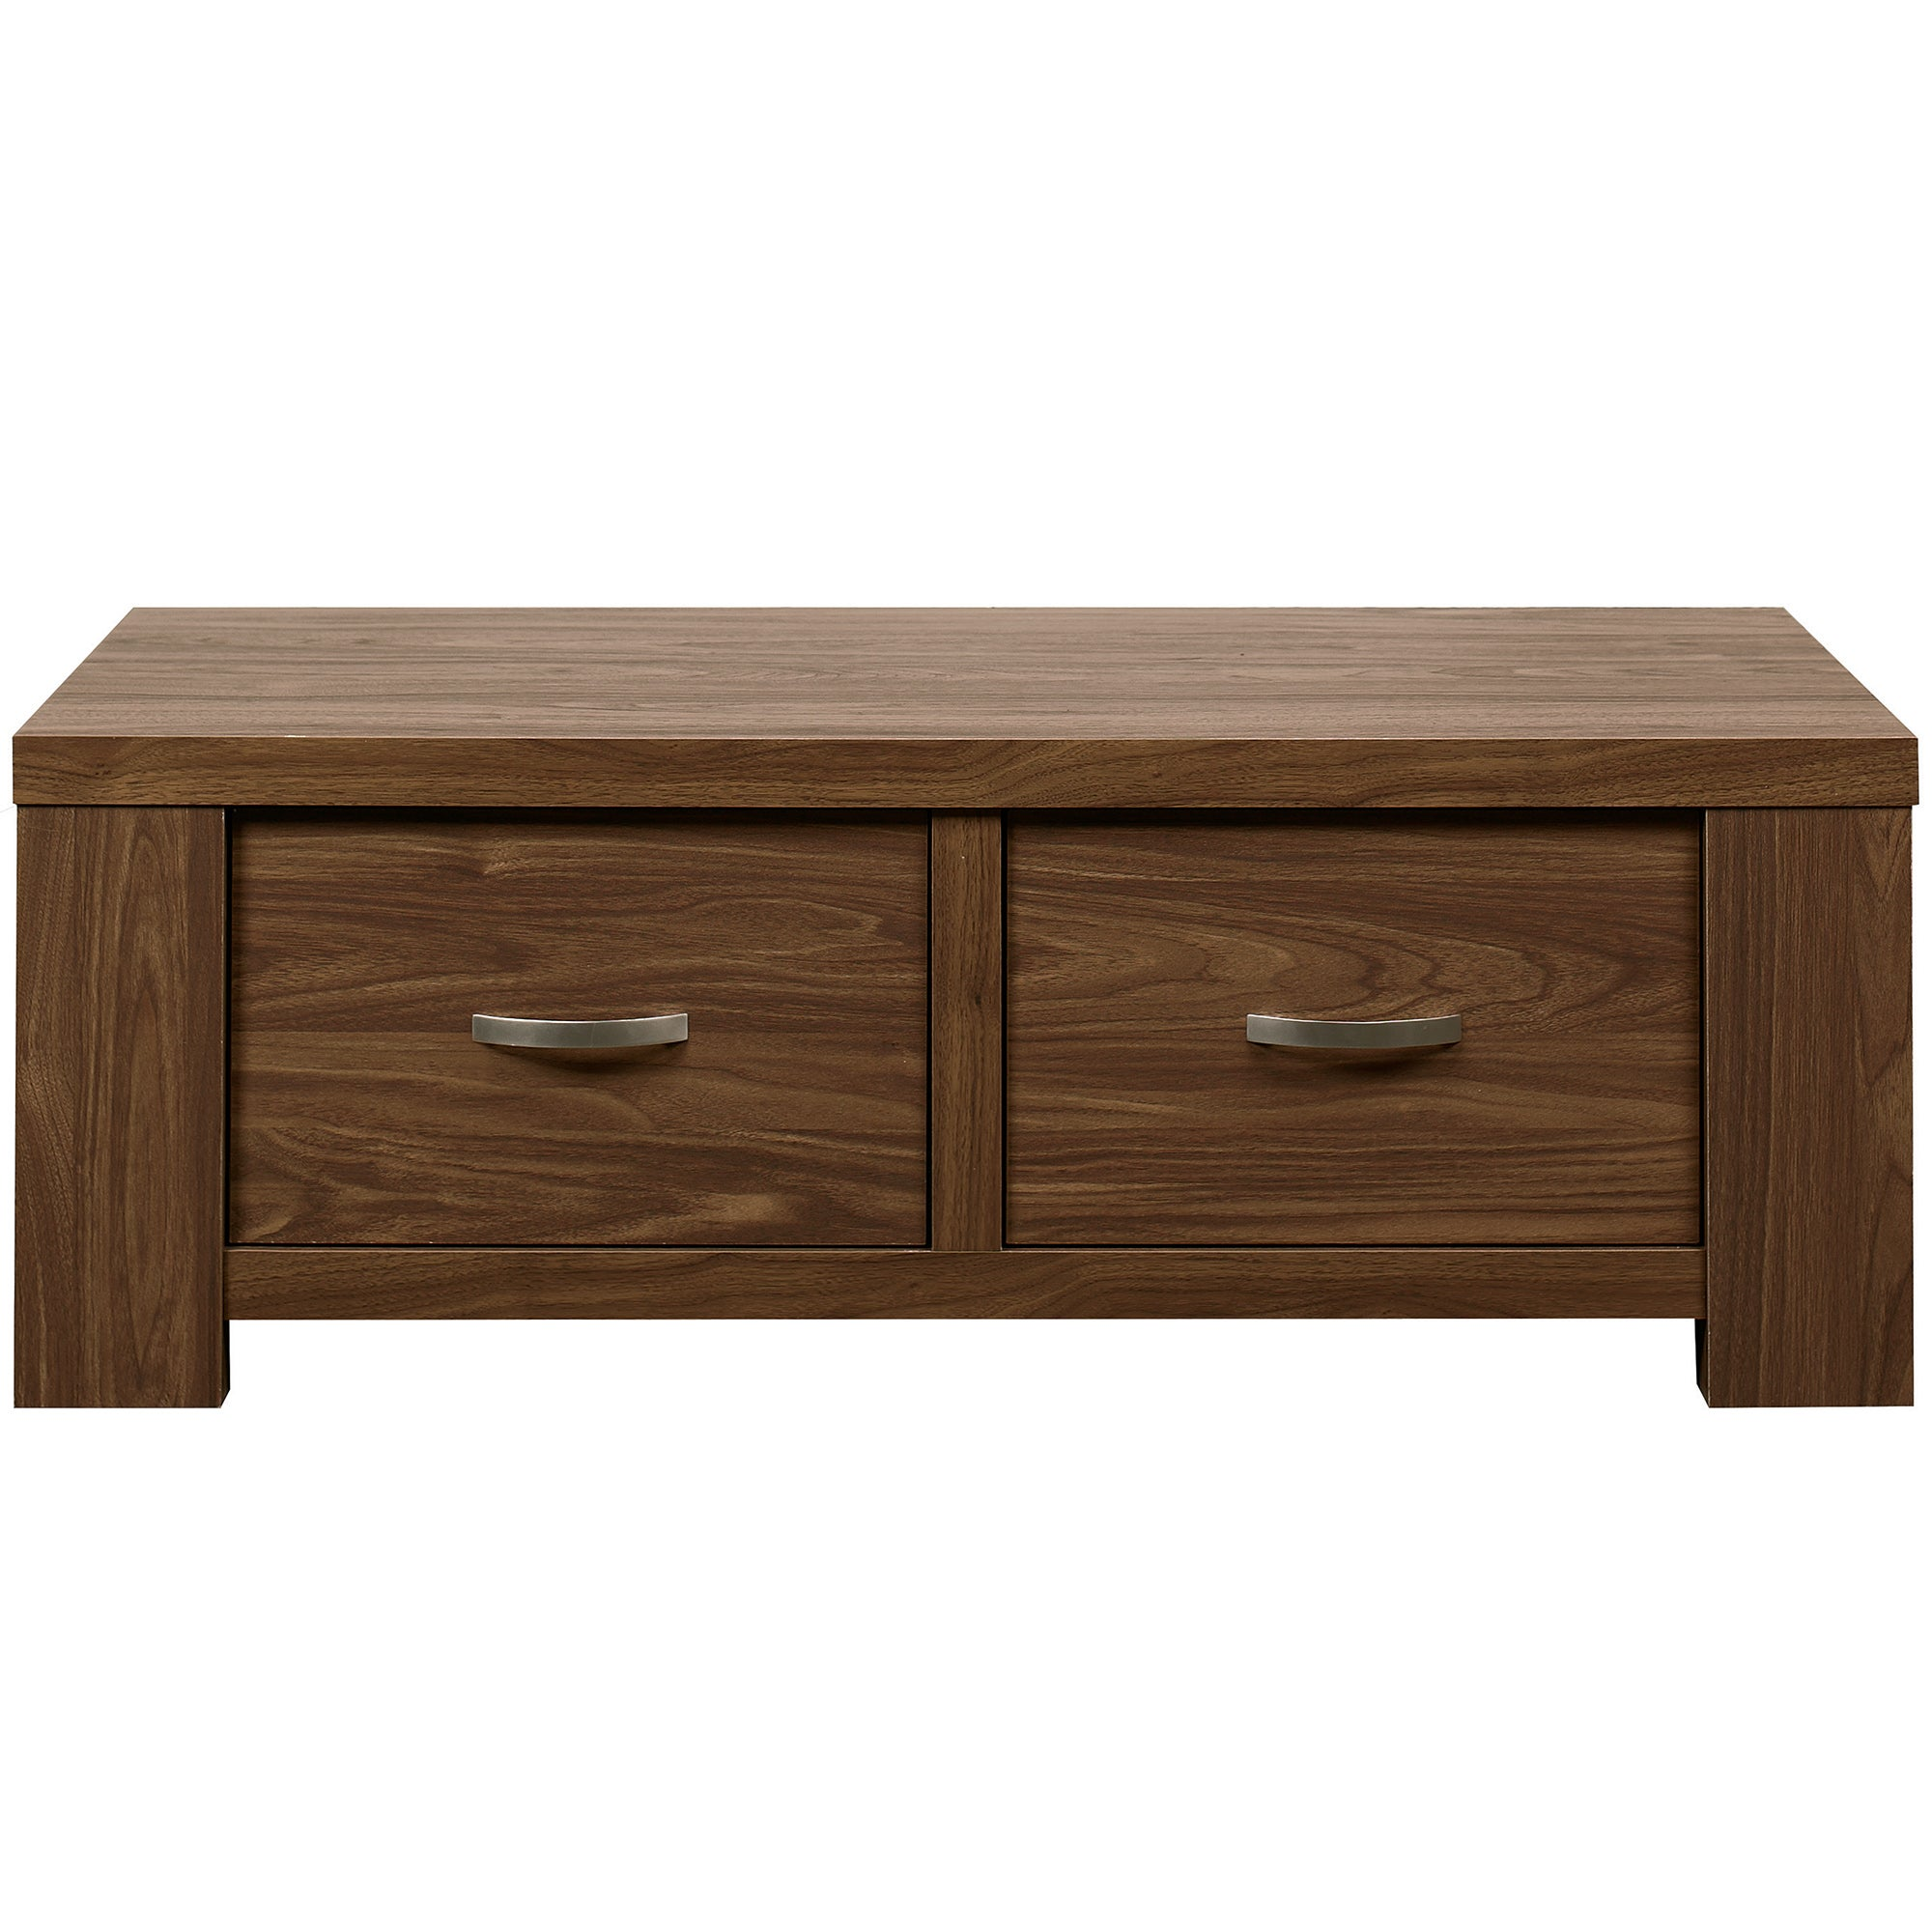 York Walnut Collection Coffee Table